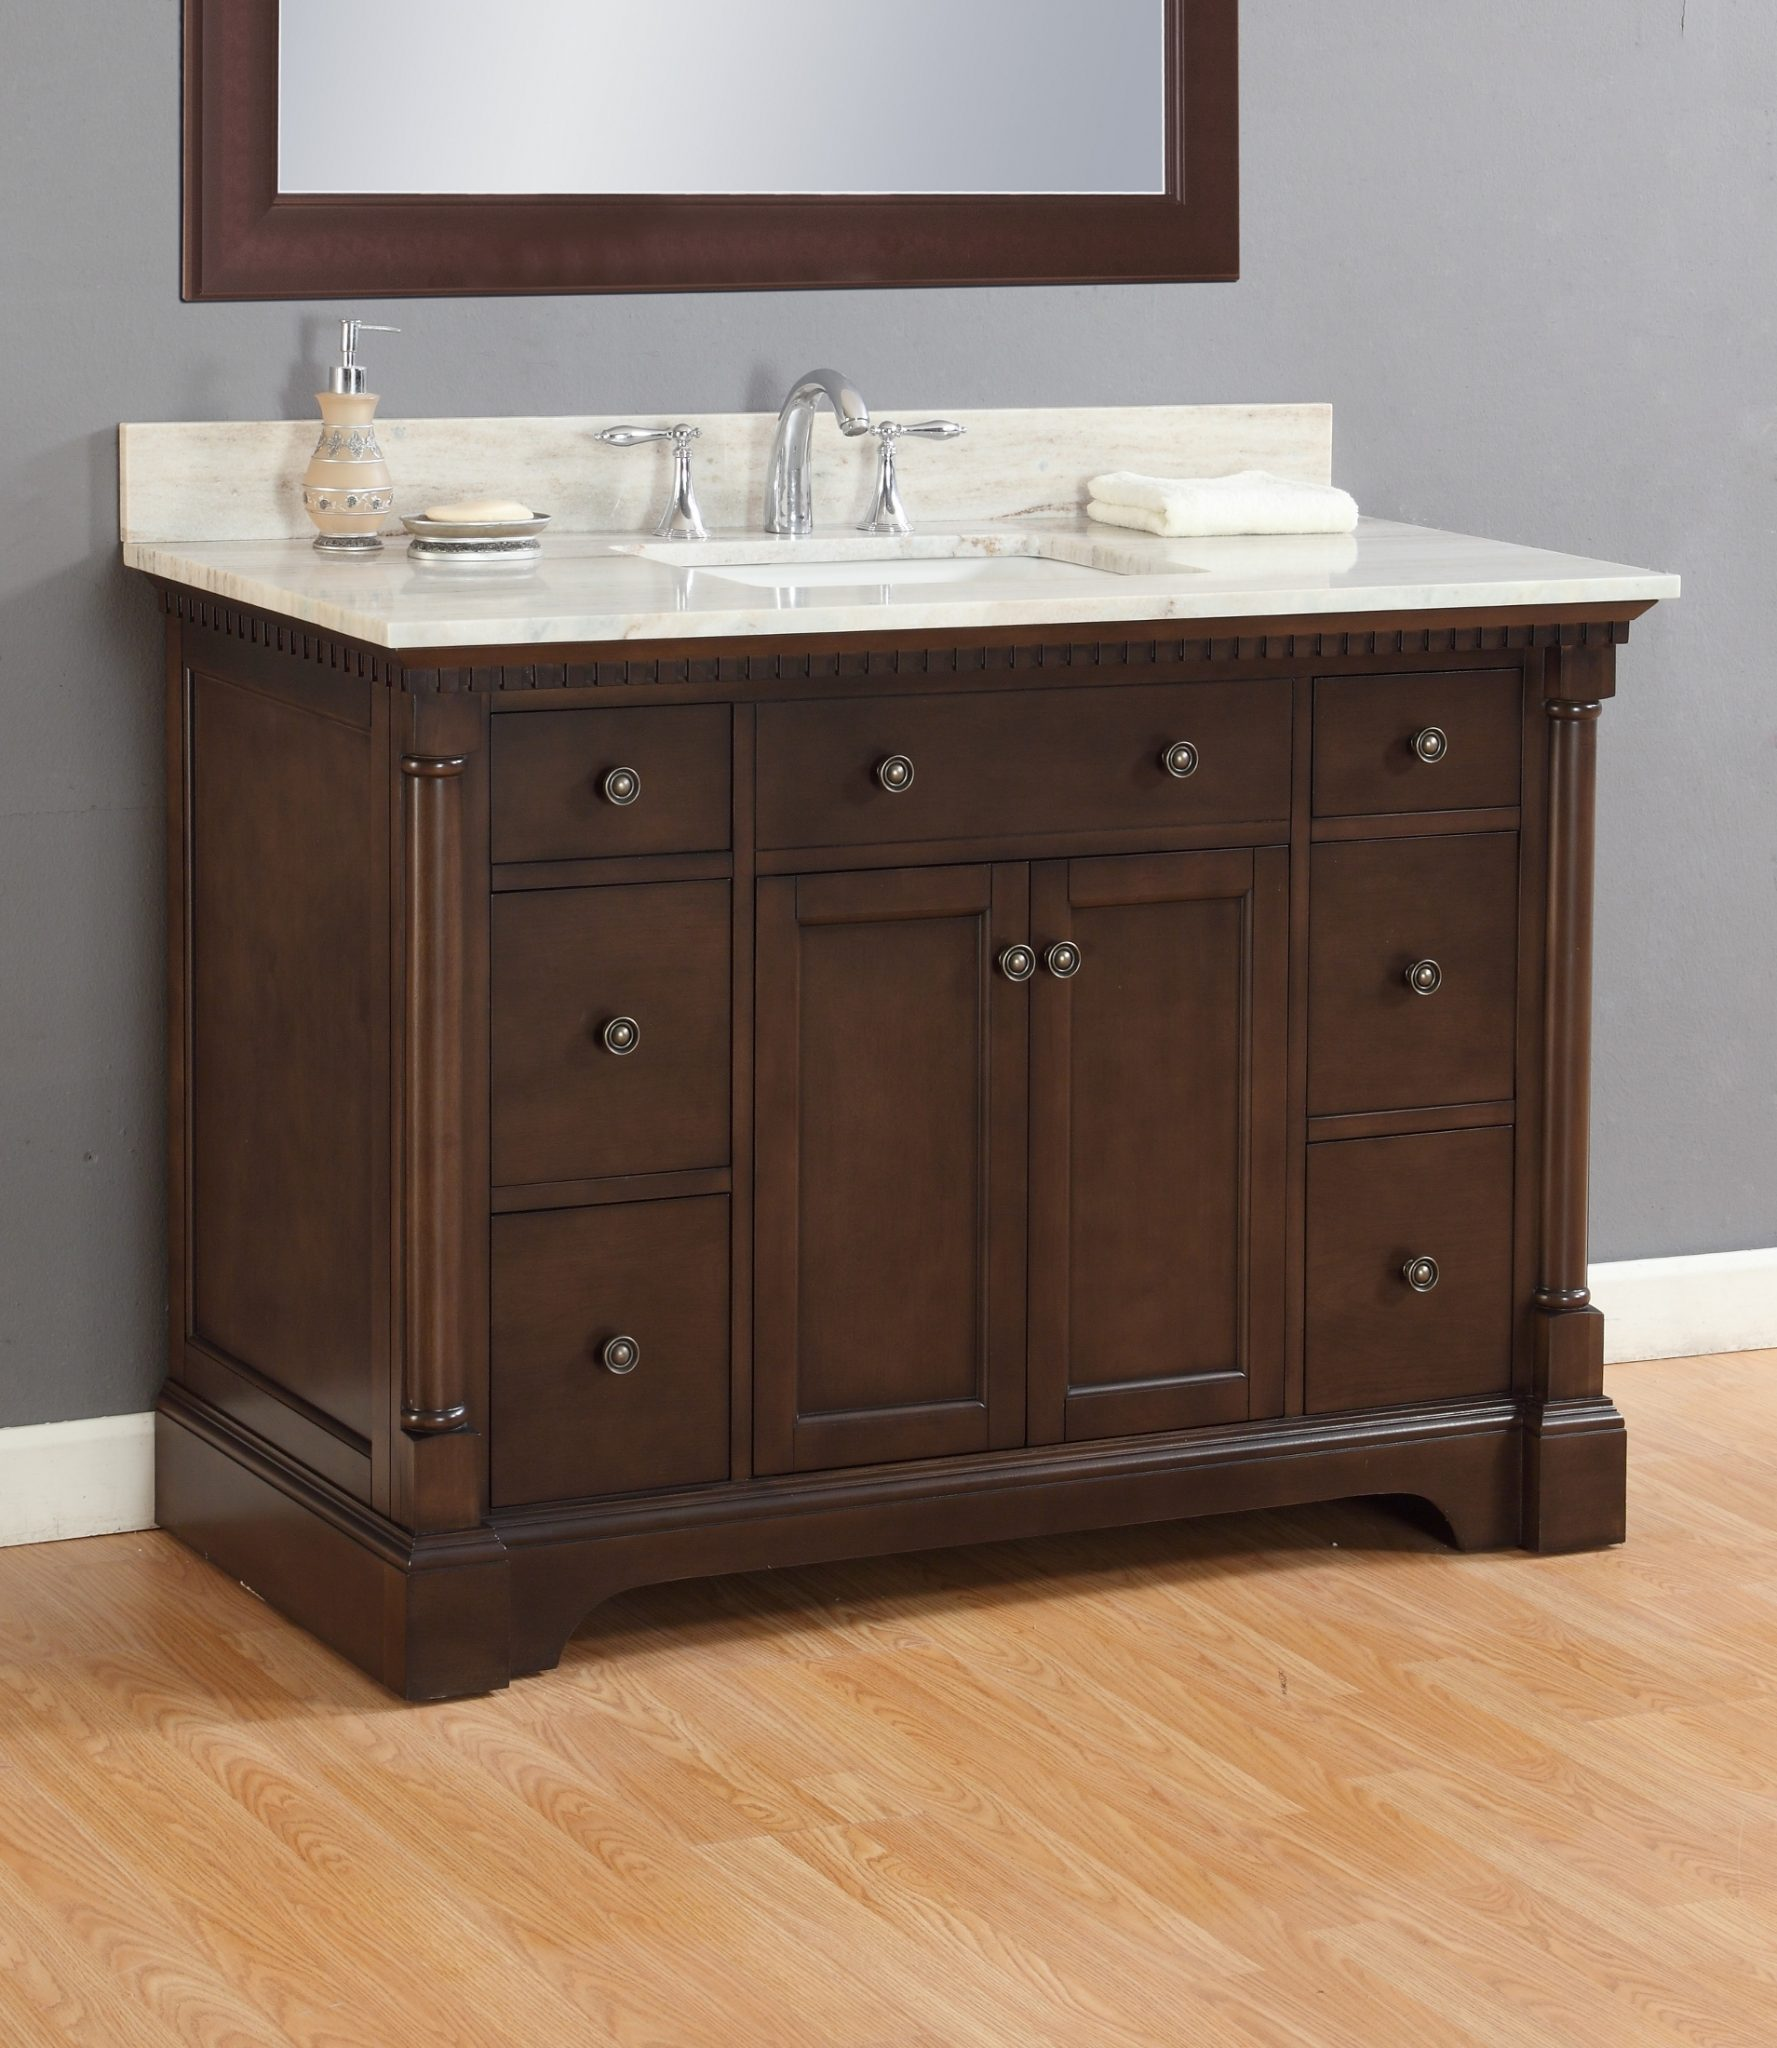 wall single in vanity element espresso product christine sink mount design set